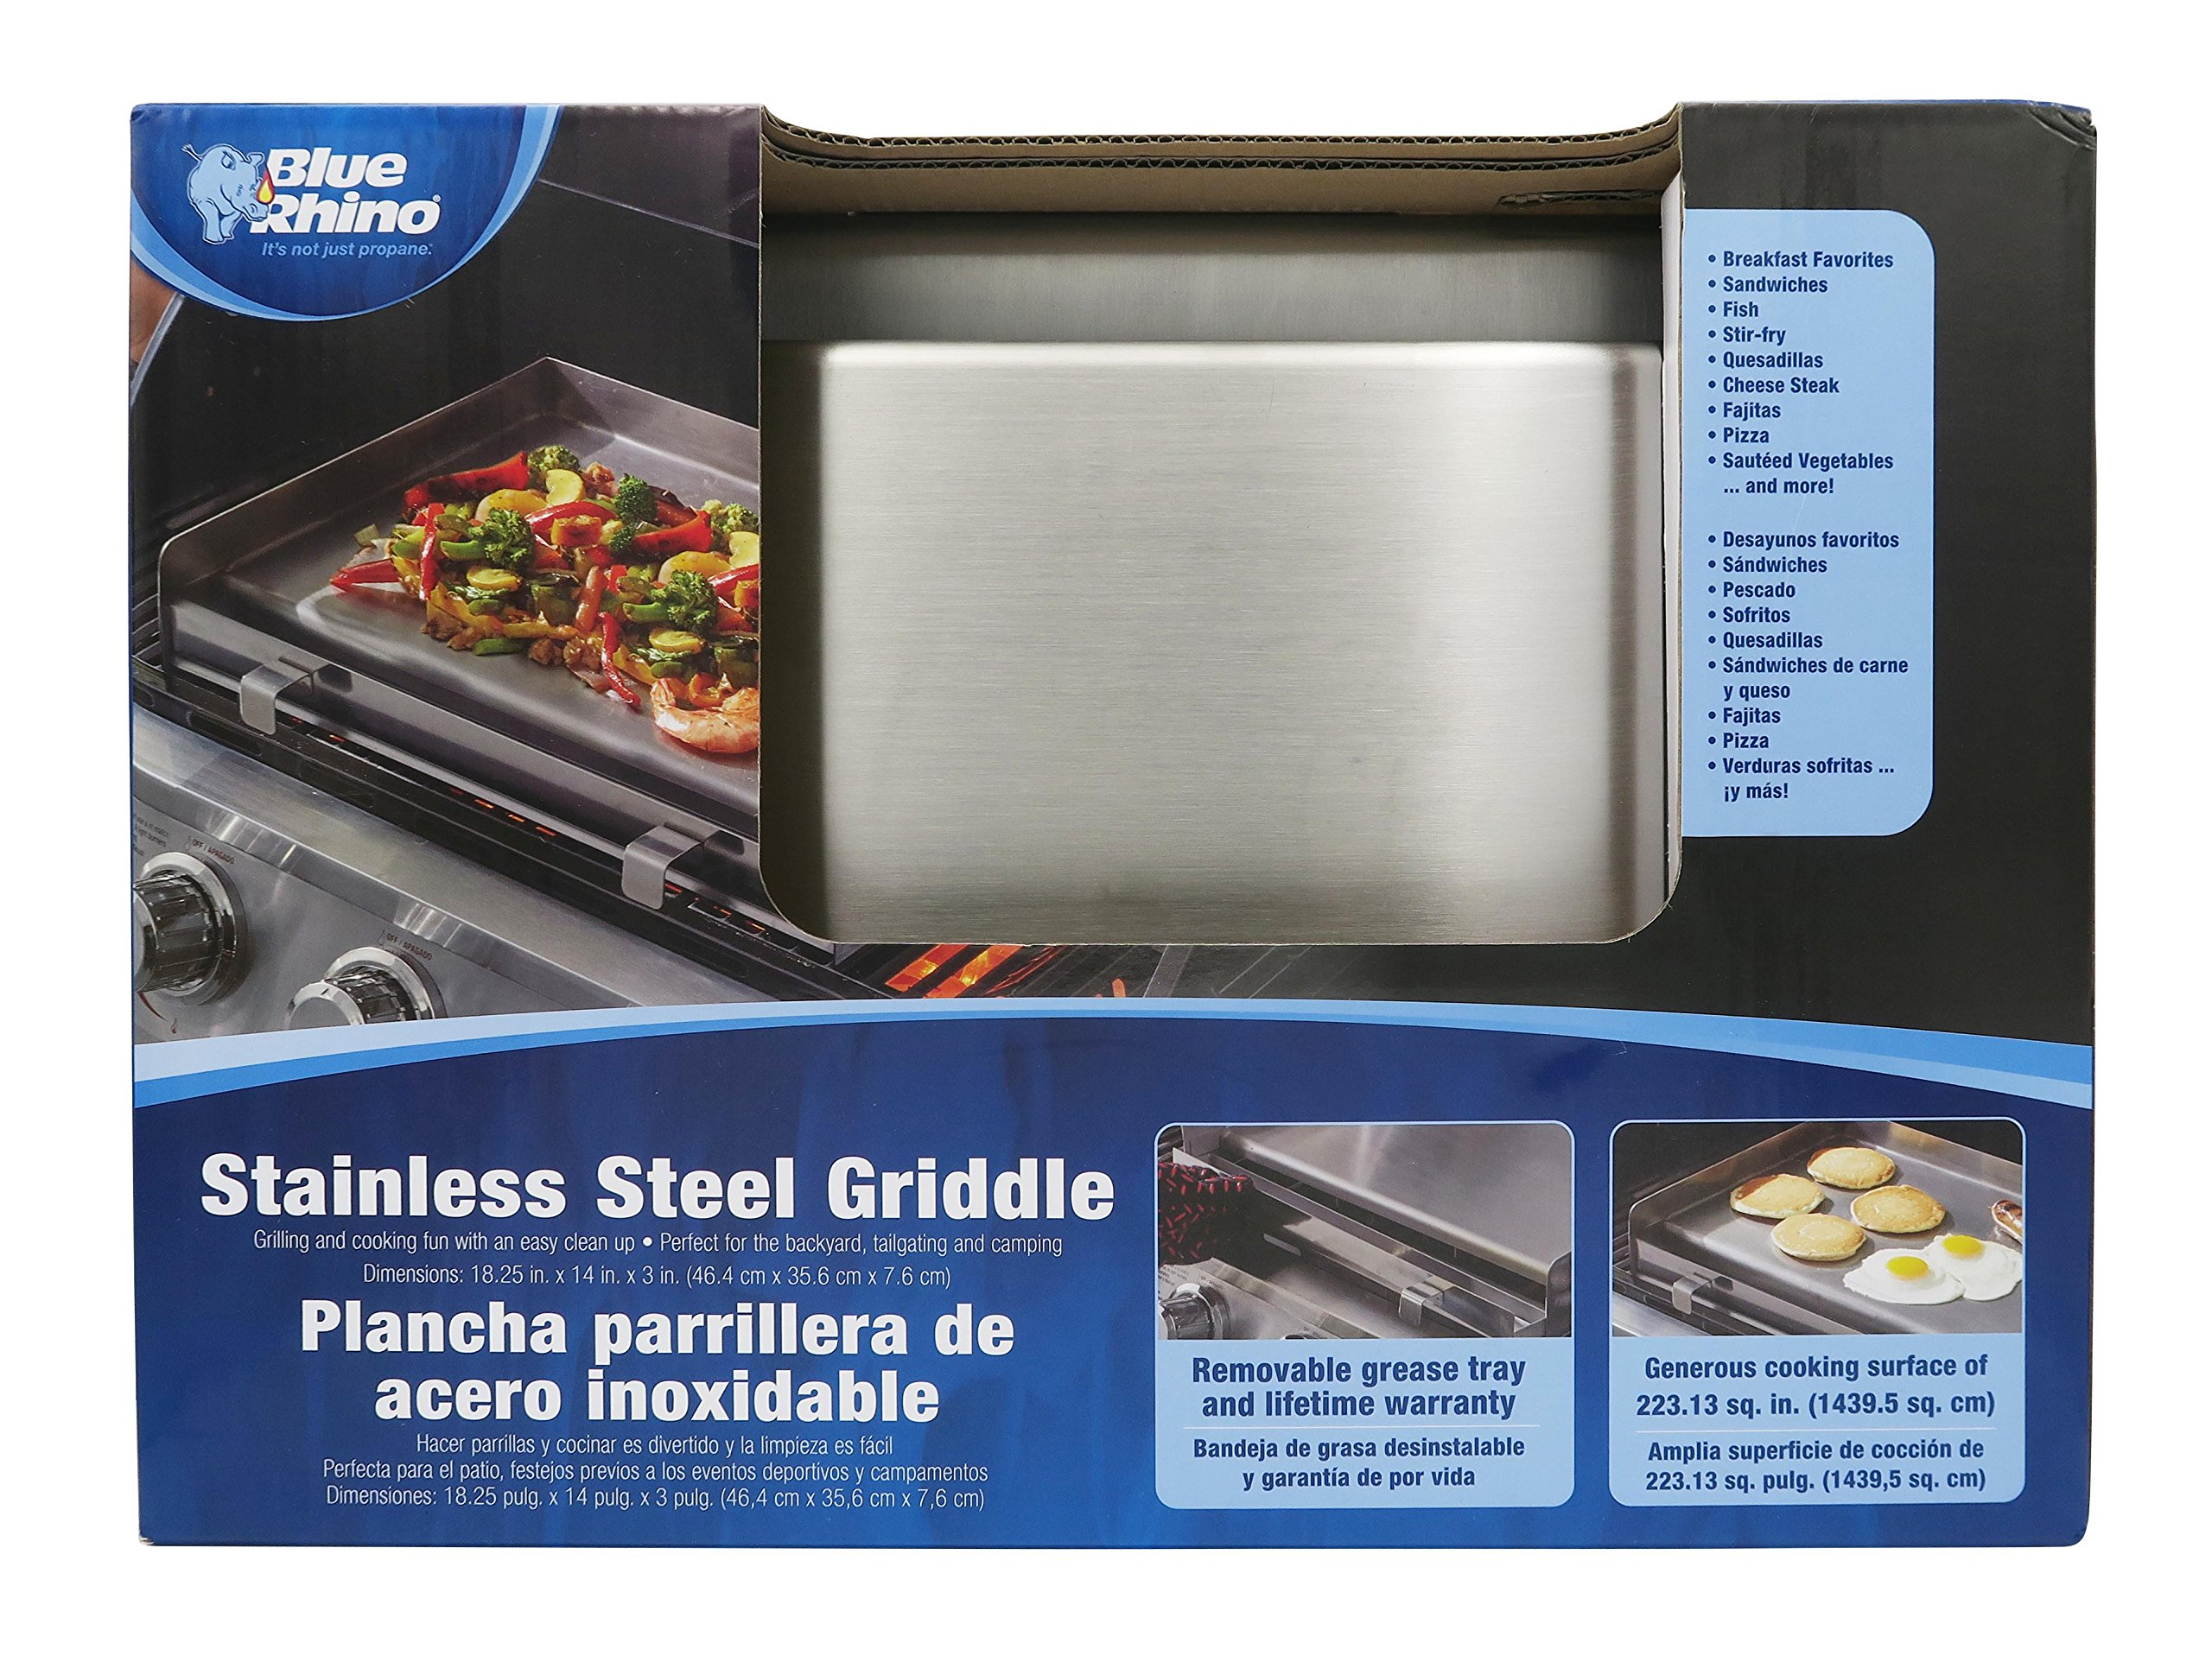 Mr. BBQ Portable Stainless Steel BBQ Griddle - Attach to your Grill or BBQ - Built in Grease Trough - Ideal for Tailgating, Backyard Parties and Camping - Make Eggs, Pancakes, or Bacon on the Grill by Mr. Bar-B-Q